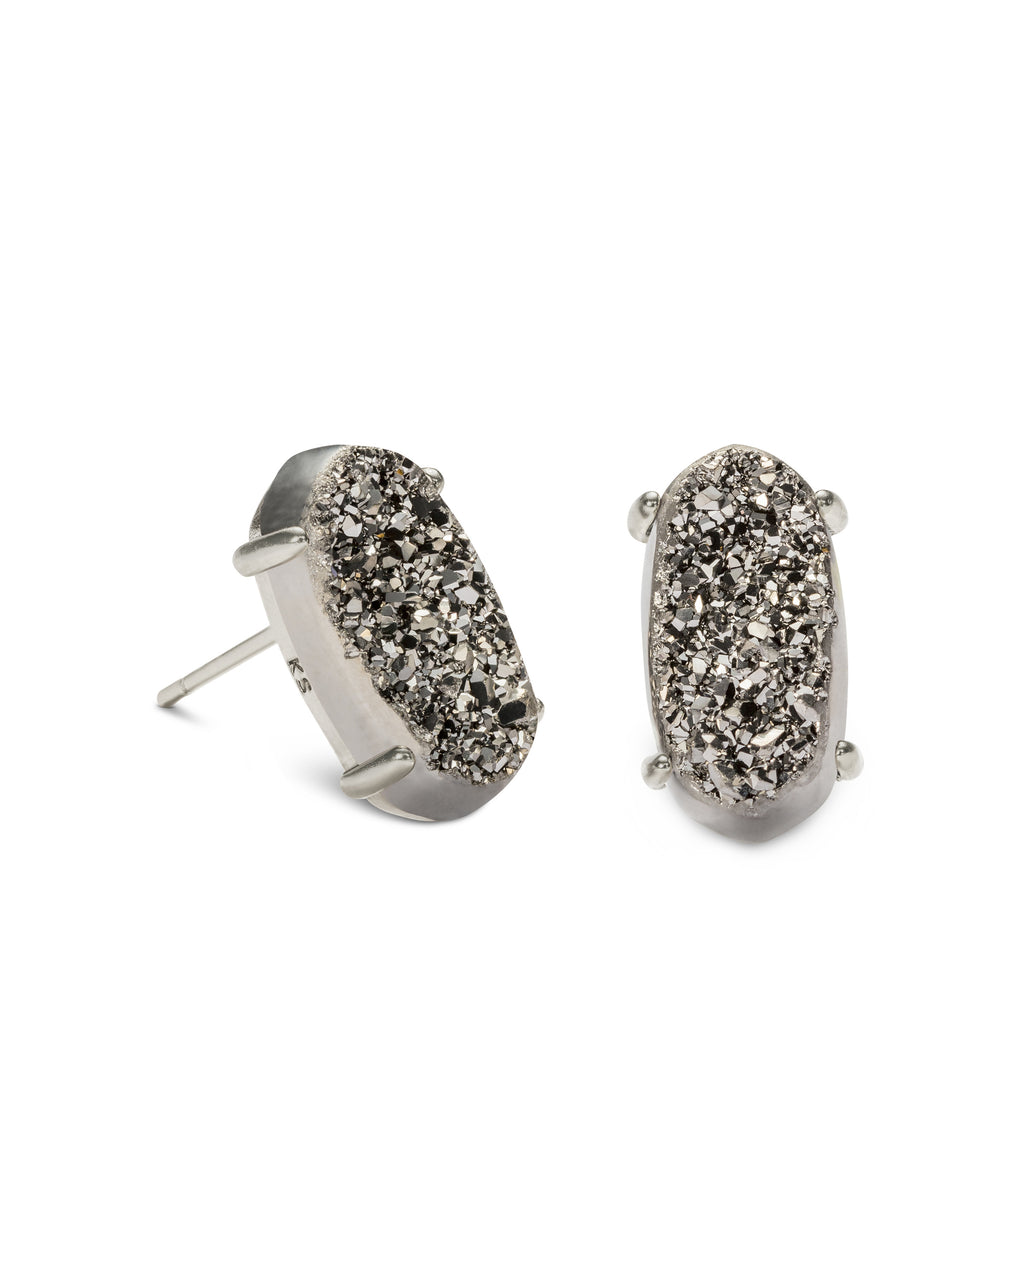 Betty Silver Stud Earrings In Platinum Drusy